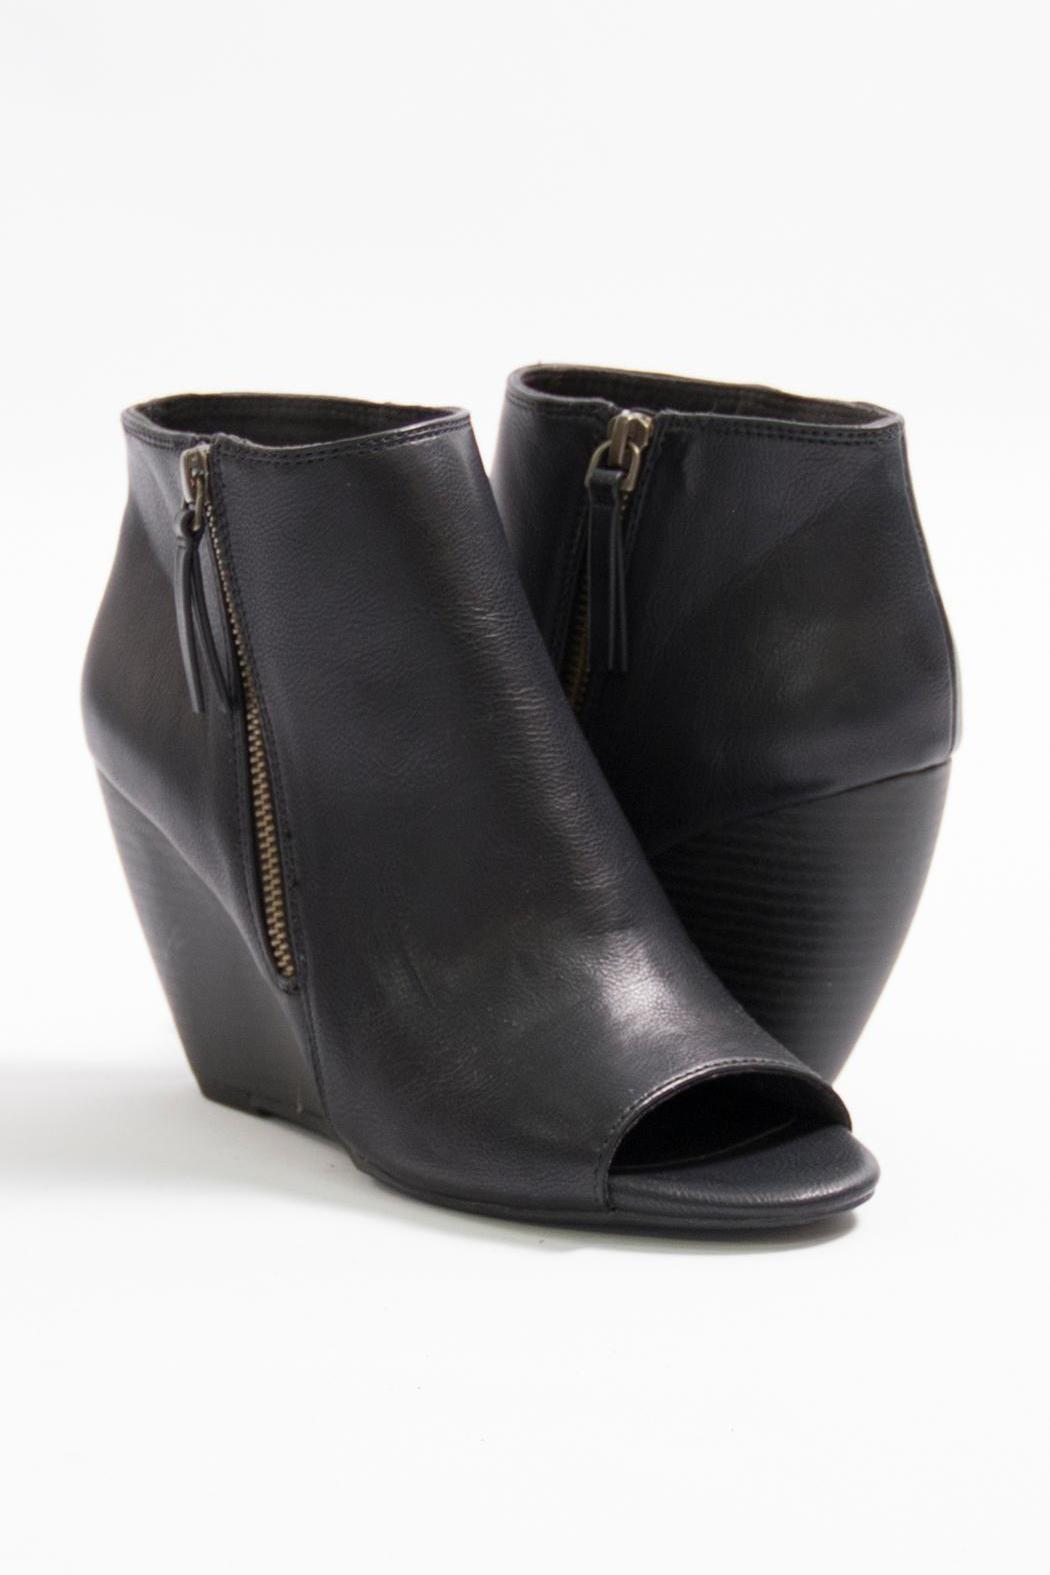 88478302687 BC Footwear Rebellion Wedge Boots from Georgia by Wild Souls ...